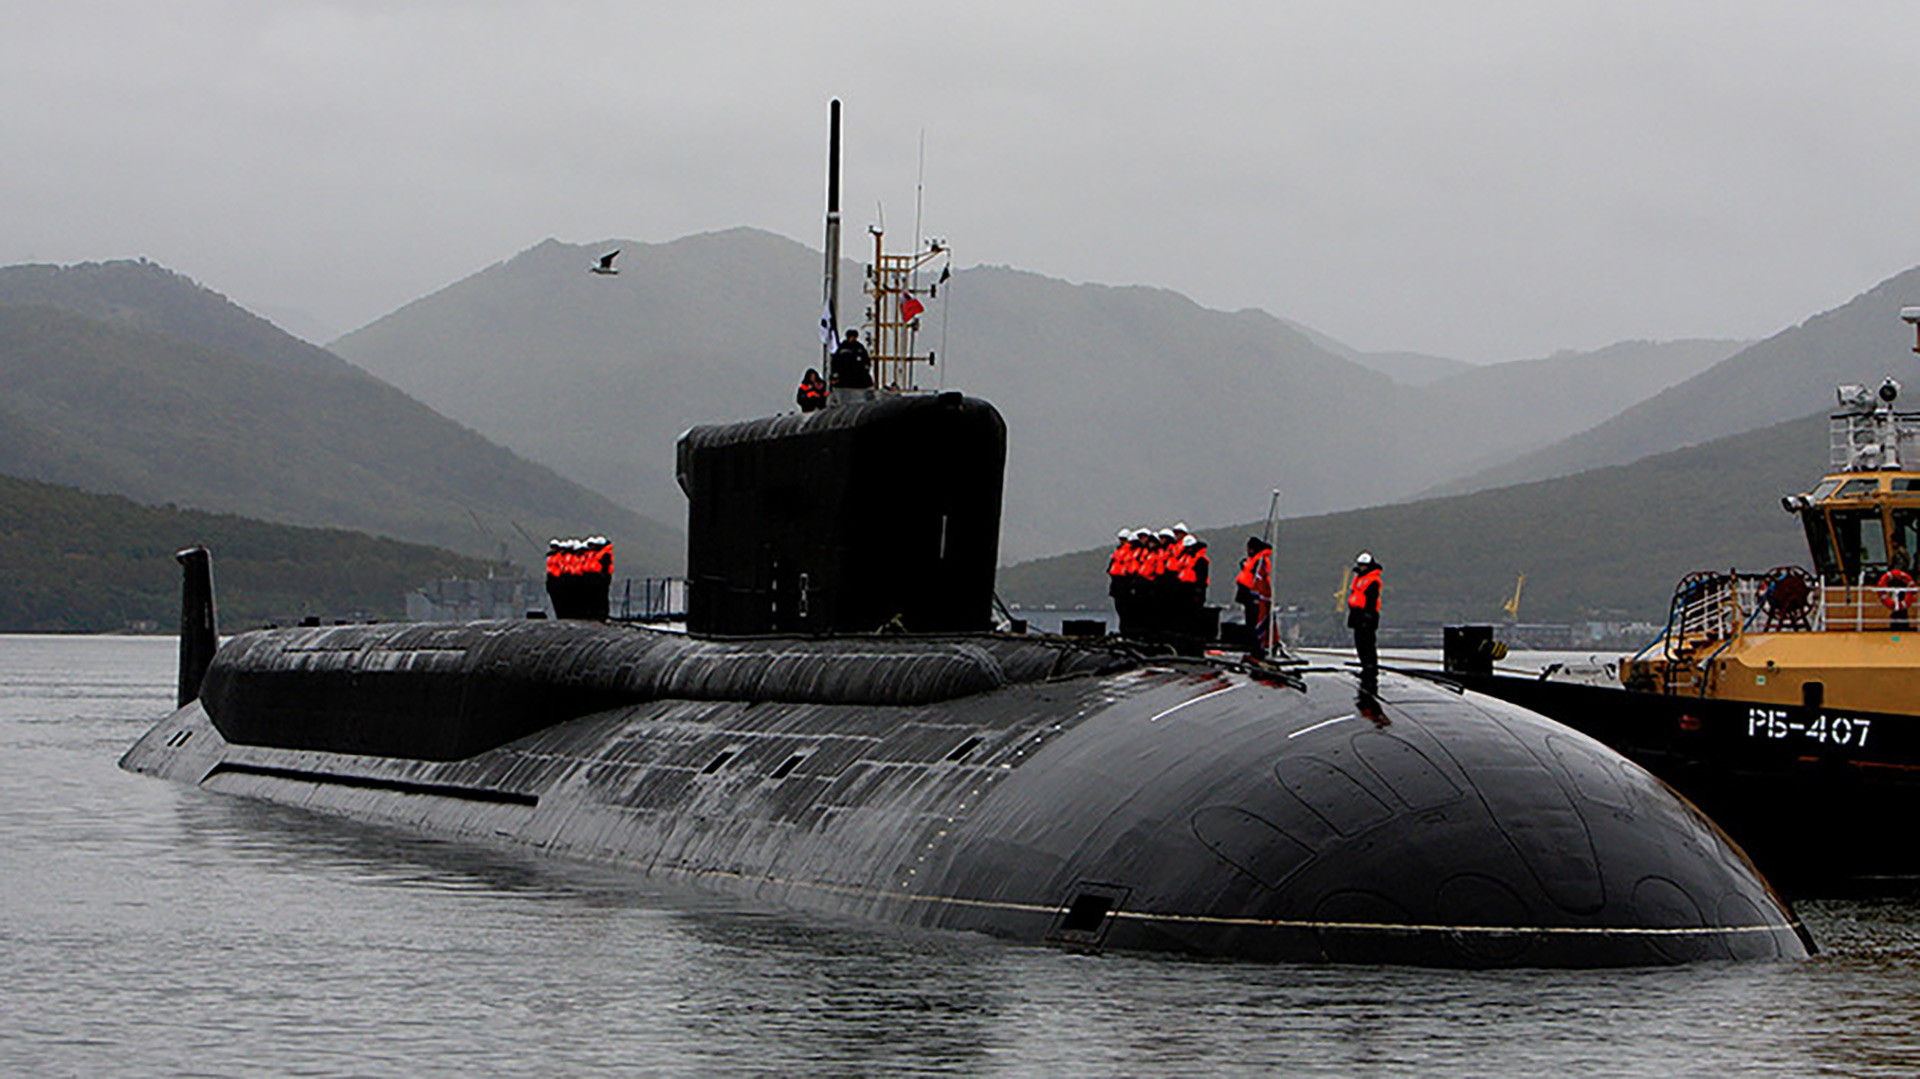 Project 955 is a new page in the development of nuclear submarines fleet of Russia. They produce five times less noise than previous era ships of project 971 and 949A.